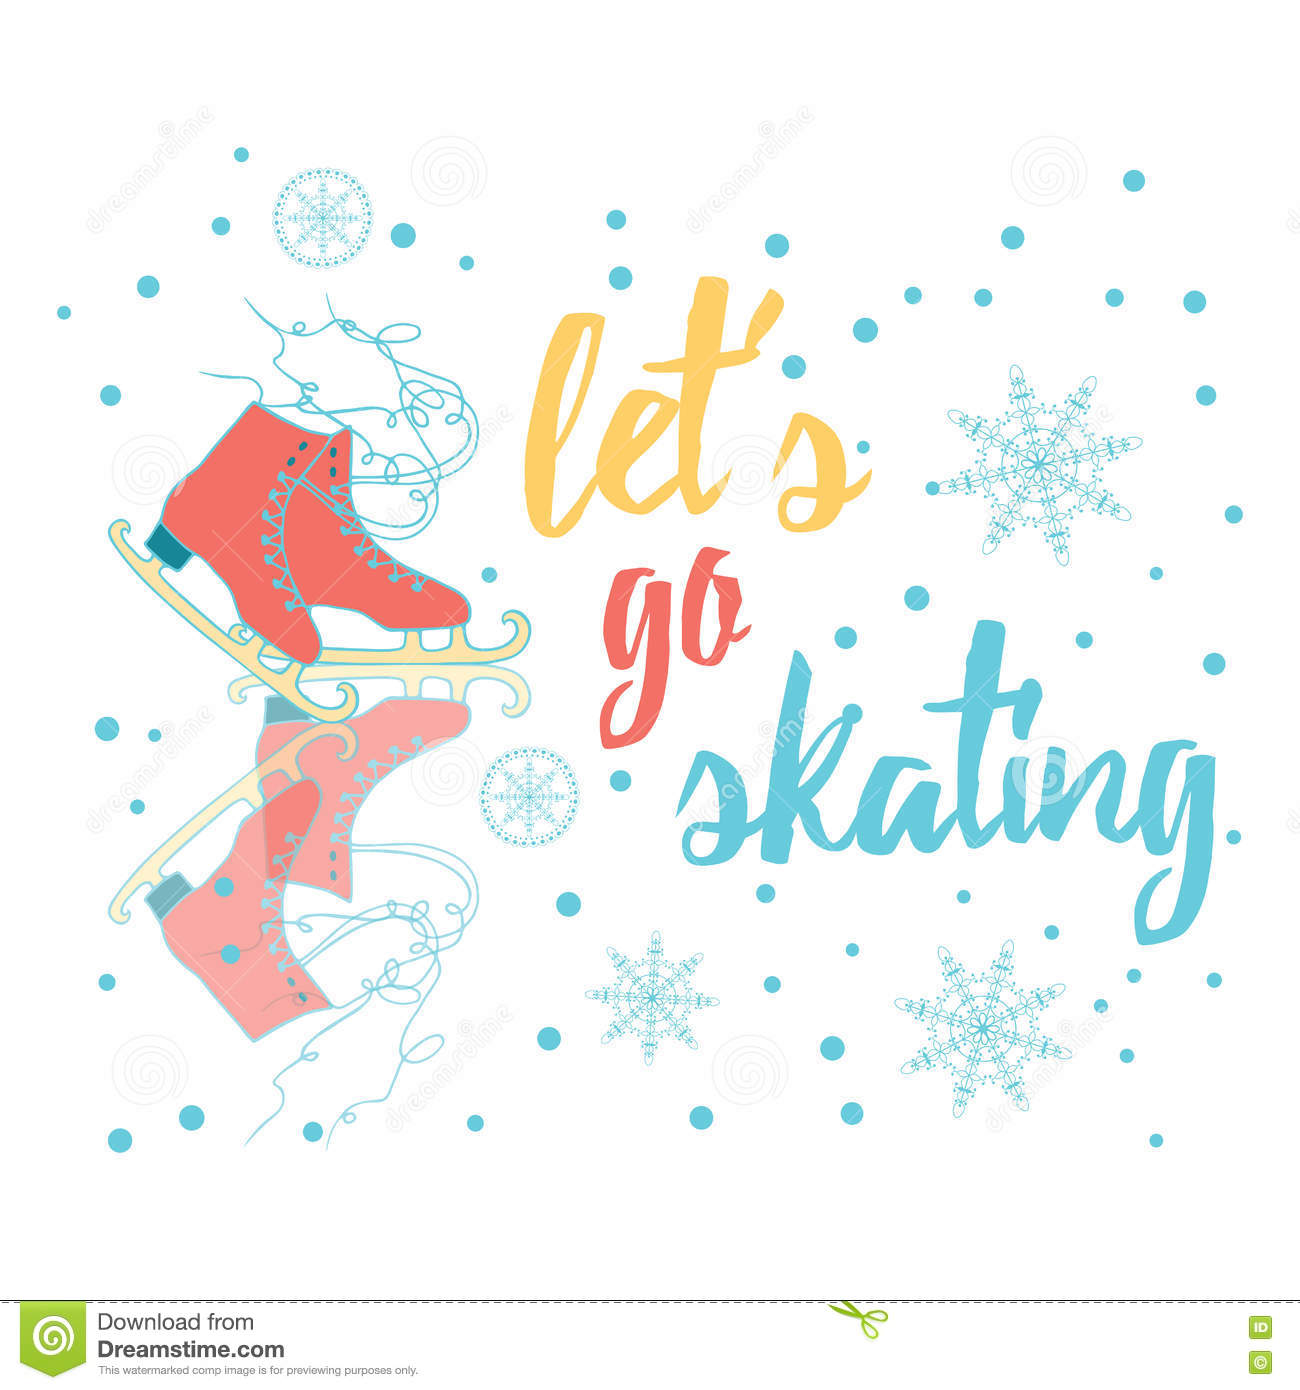 how to ask a girl to go ice skating